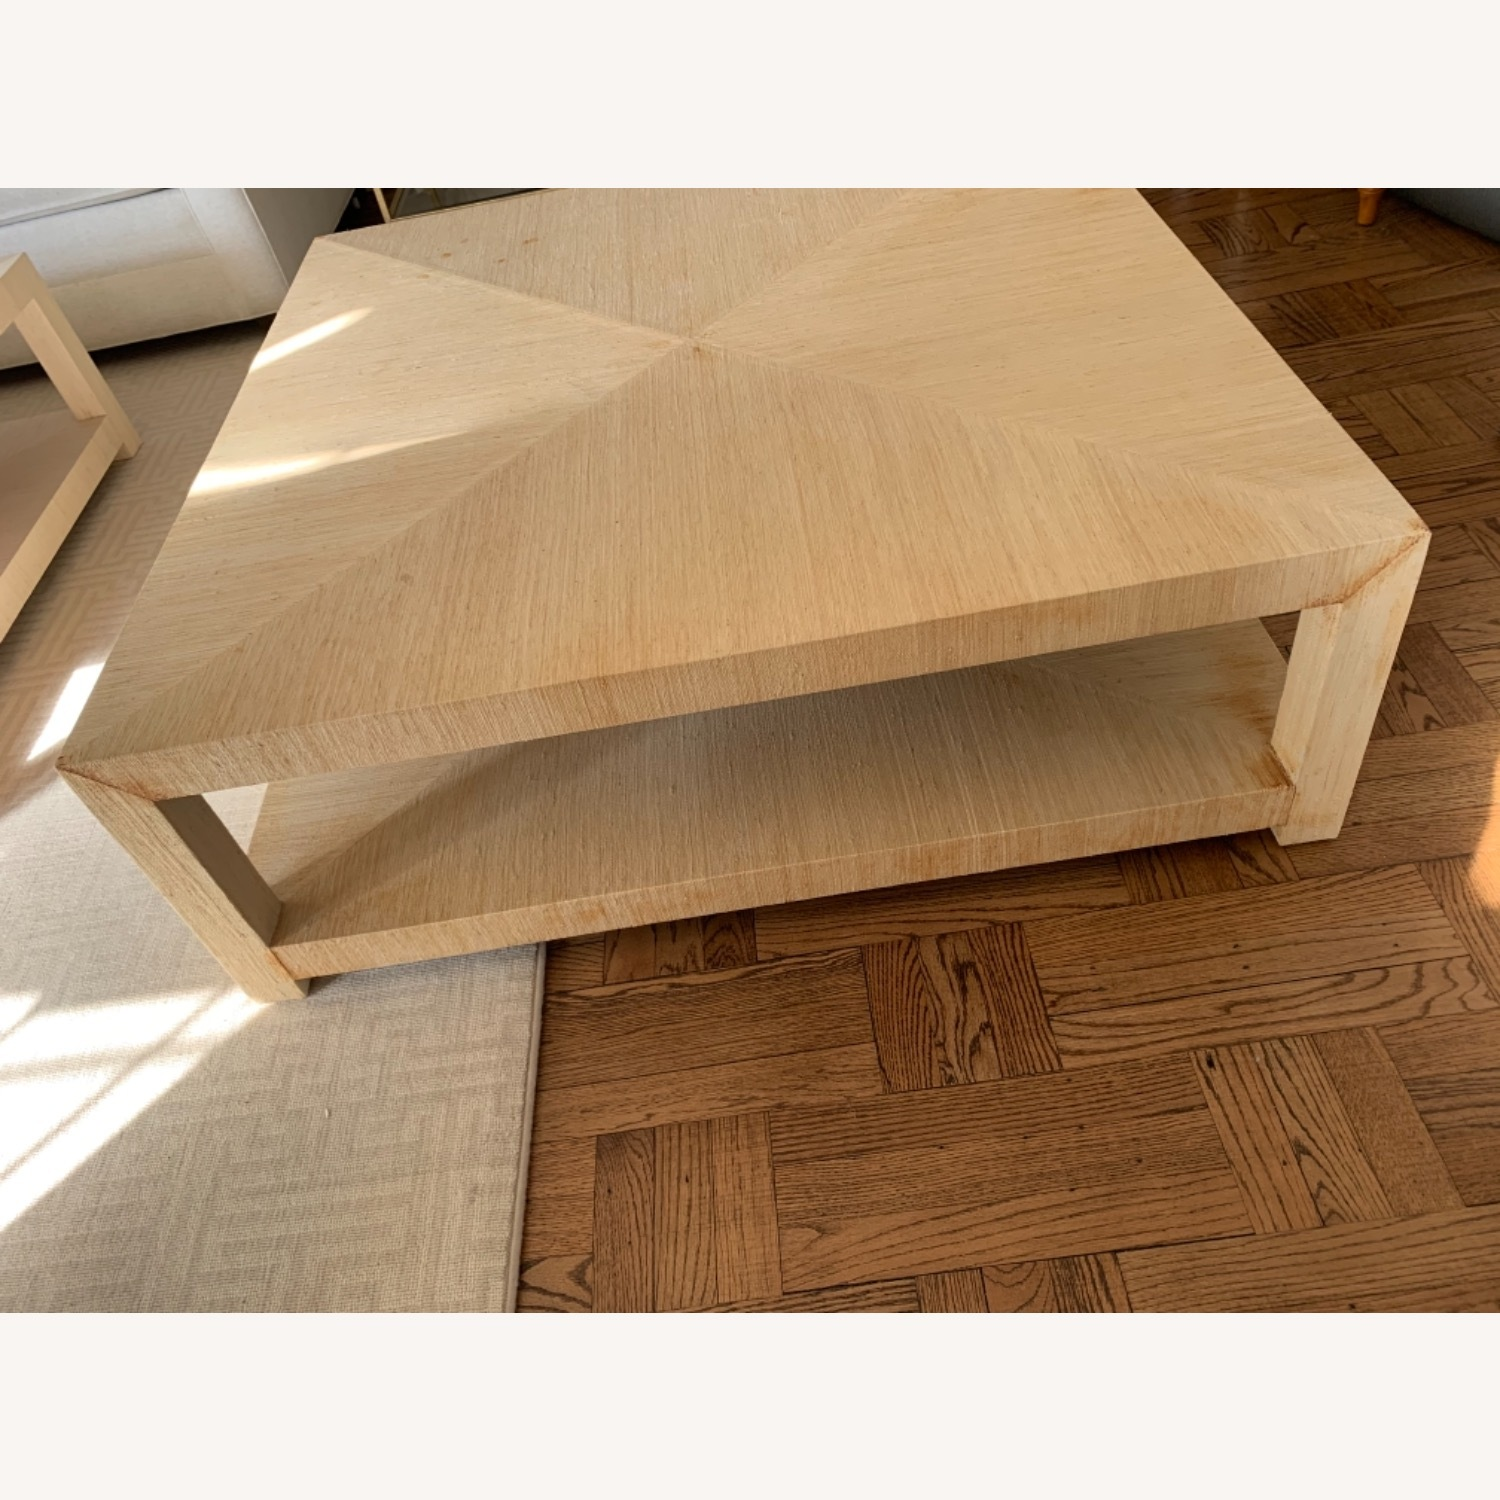 Serena & Lily Driftway Coffee Table - image-6